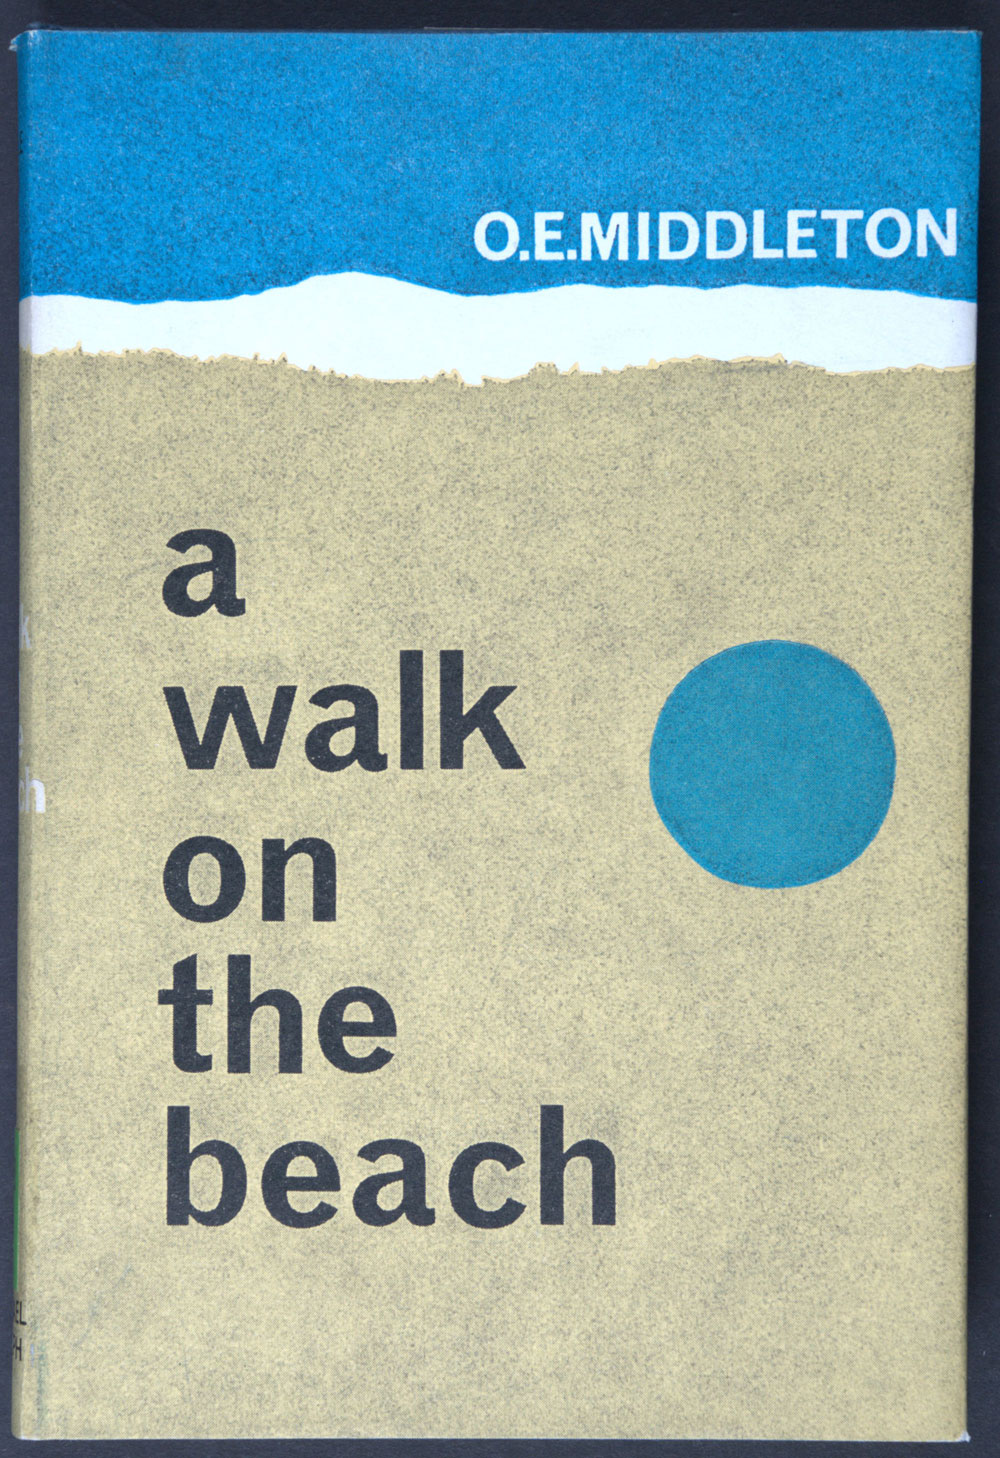 O.E. Middleton. <em>A walk on the beach.</em> London: Michael Joseph, 1964.